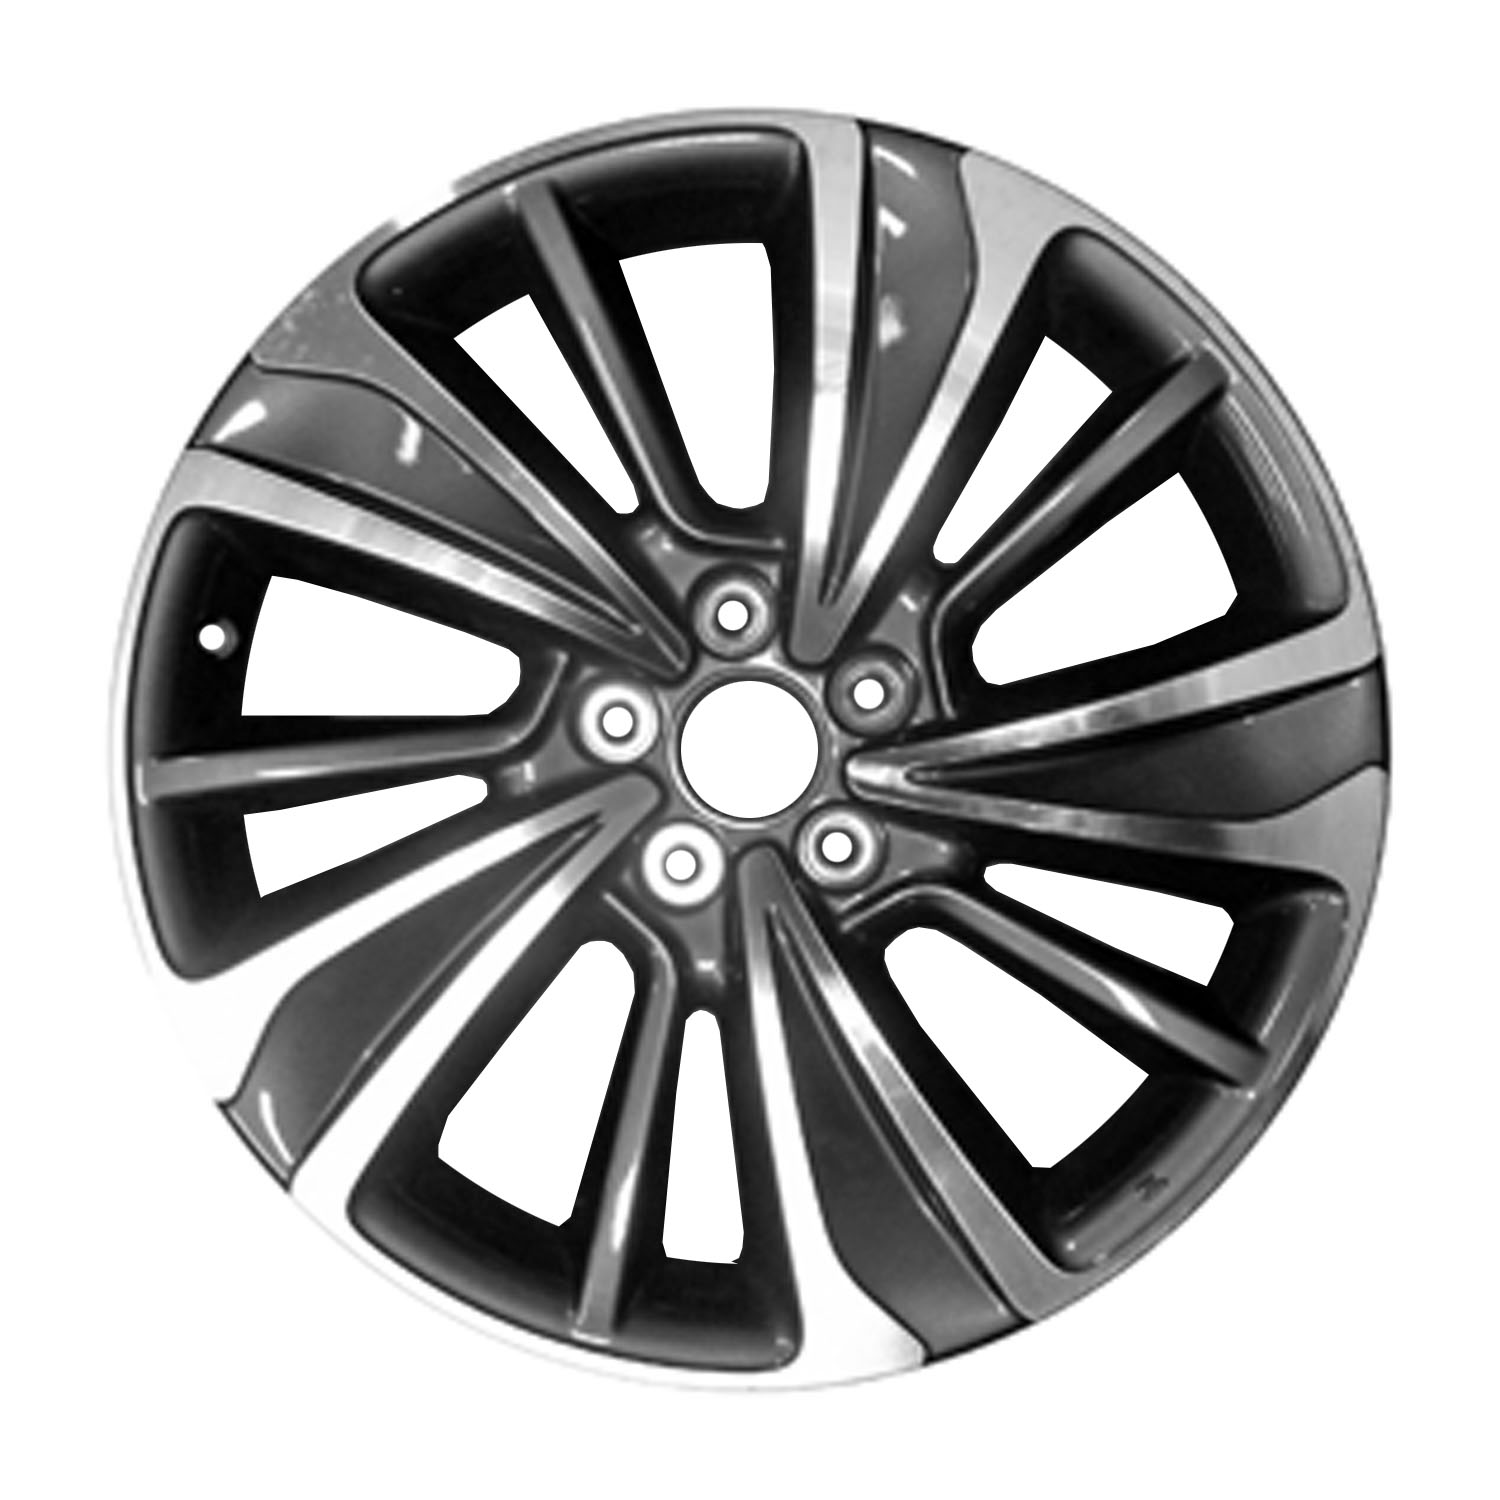 20 X 8 10 Spoke Aluminum Alloy Wheel Machined And Charcoal 71838